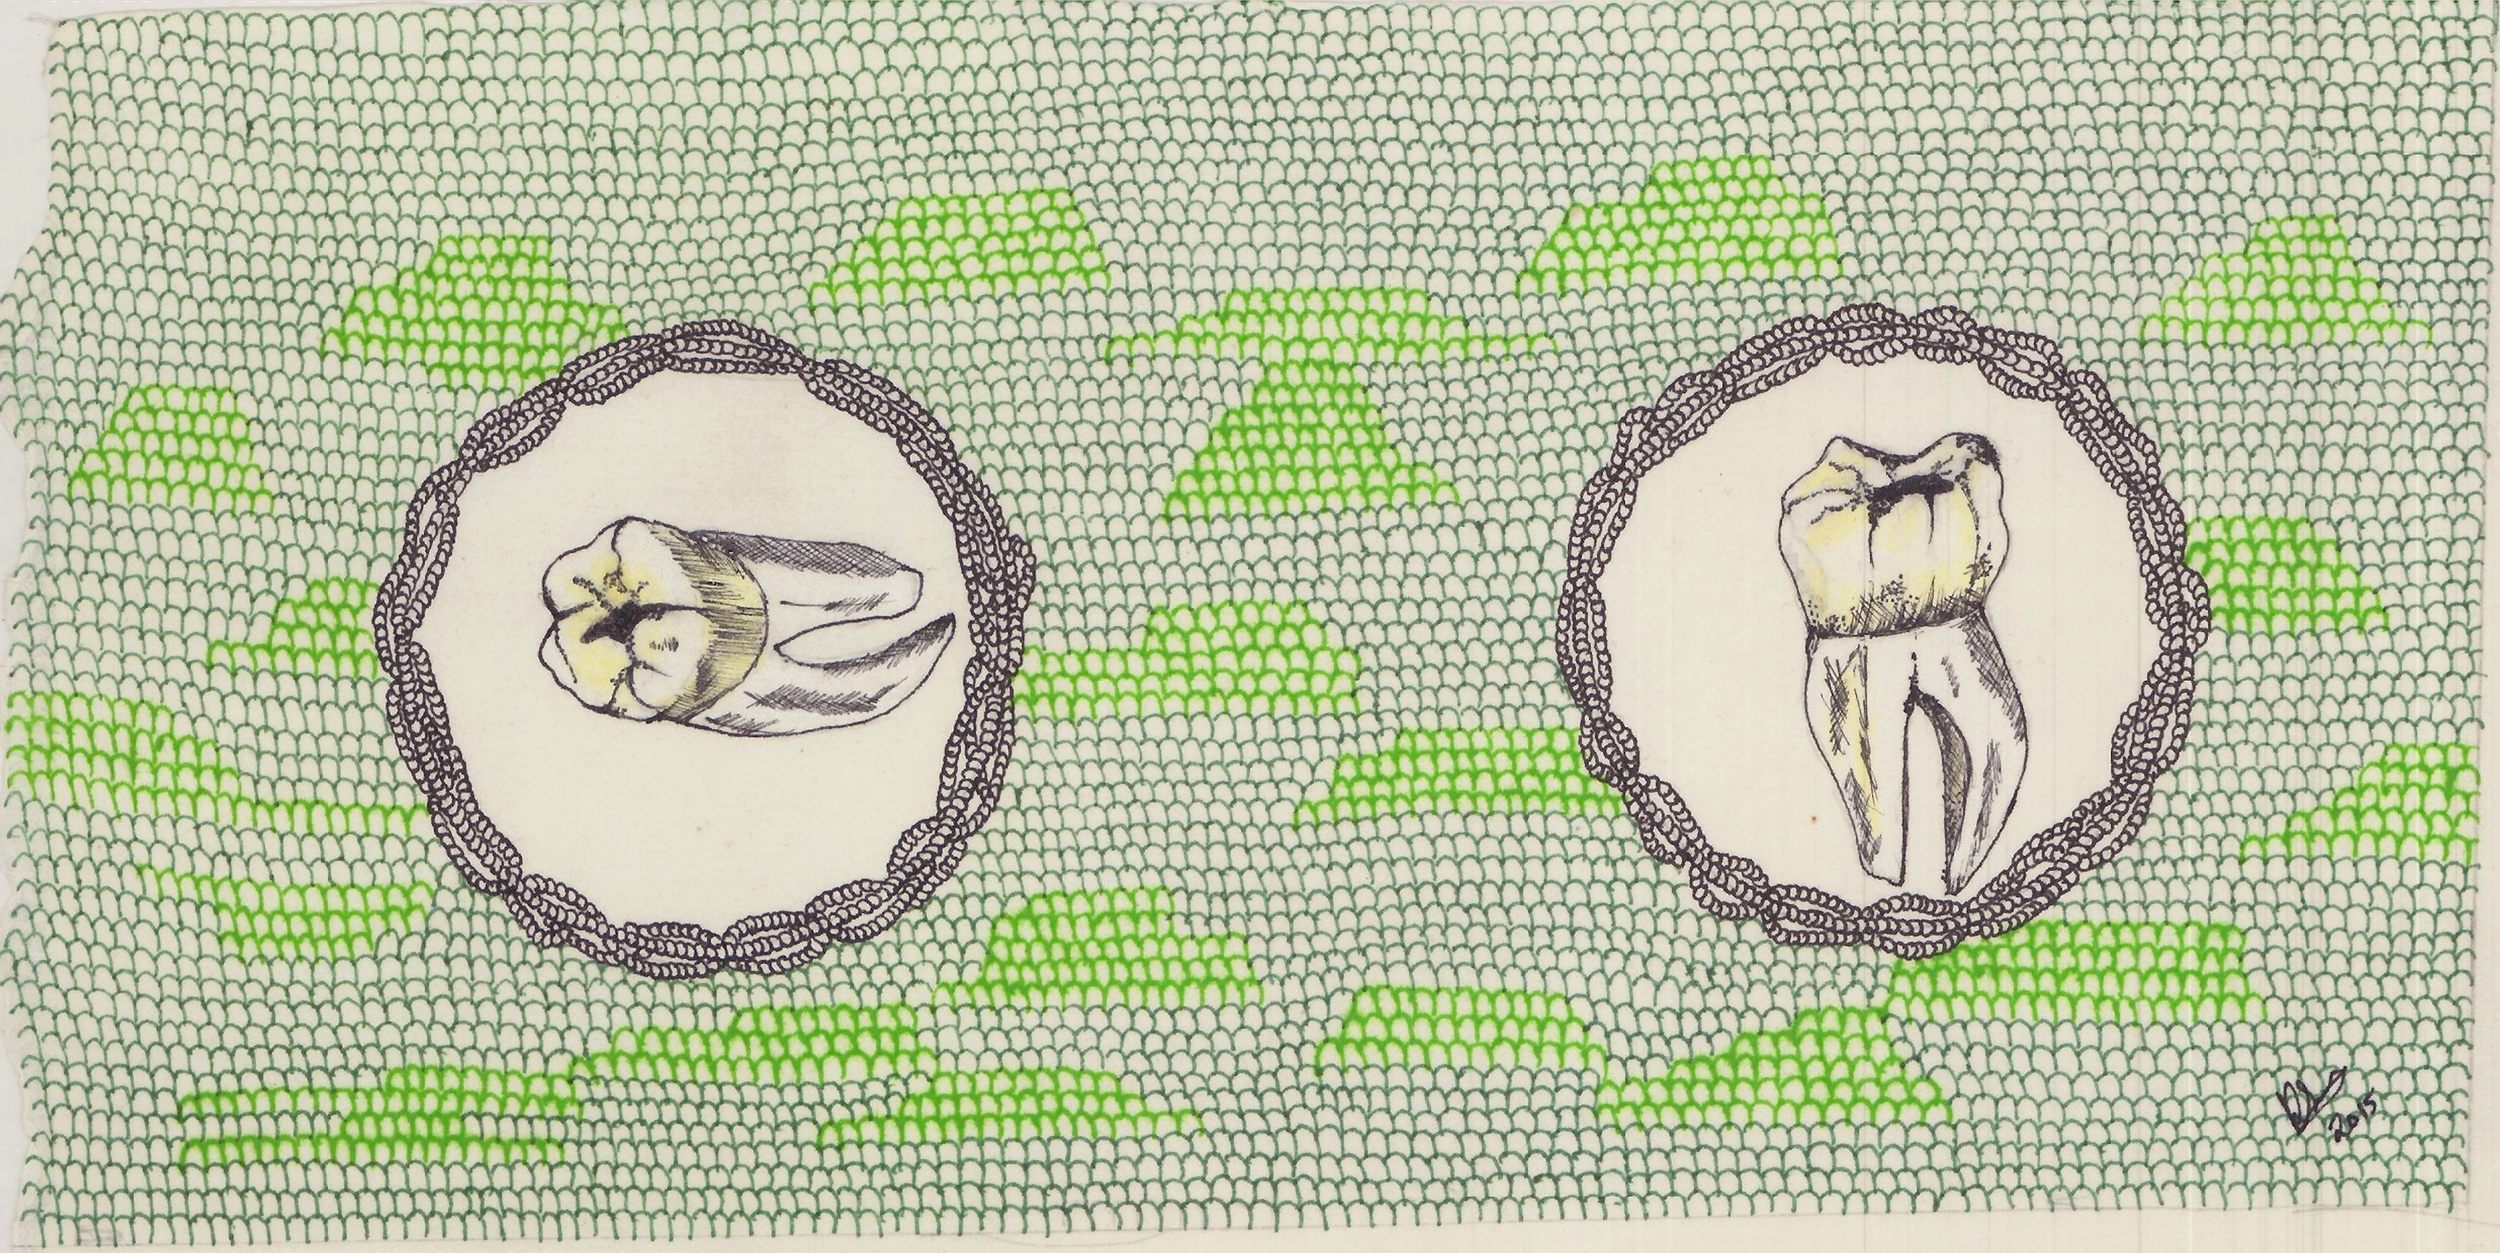 Rohini Sen, Thoughts that fill a Cavity, 2015,more  here .